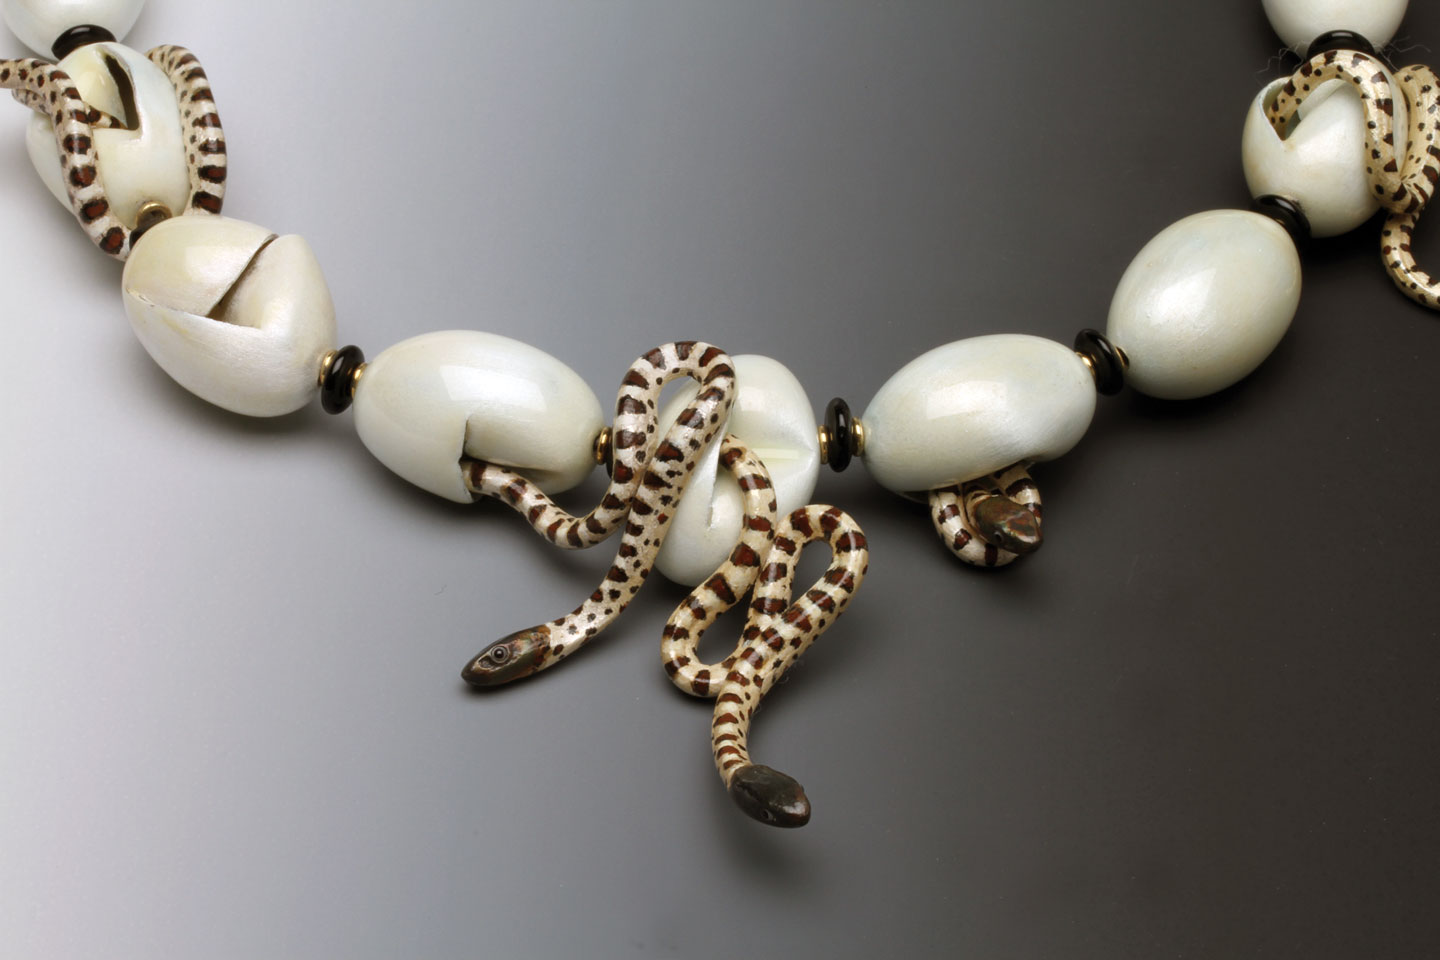 STUDY OF NORTHERN BLACK RAT SNAKE NECKLACE, closeup showing eggs and hatchlings, of enamel over fine silver, with gold jumprings and Czech glass beads. Multiples of this necklace have been made from 1984 to 2000, his only limited production design; this necklace is 24.1 centimeters long, with eggs 2.7 cm each. The late Barbara Rockefeller owned the first snake egg and hatchling necklace made by Freda.  Mobilia Gallery Collection.